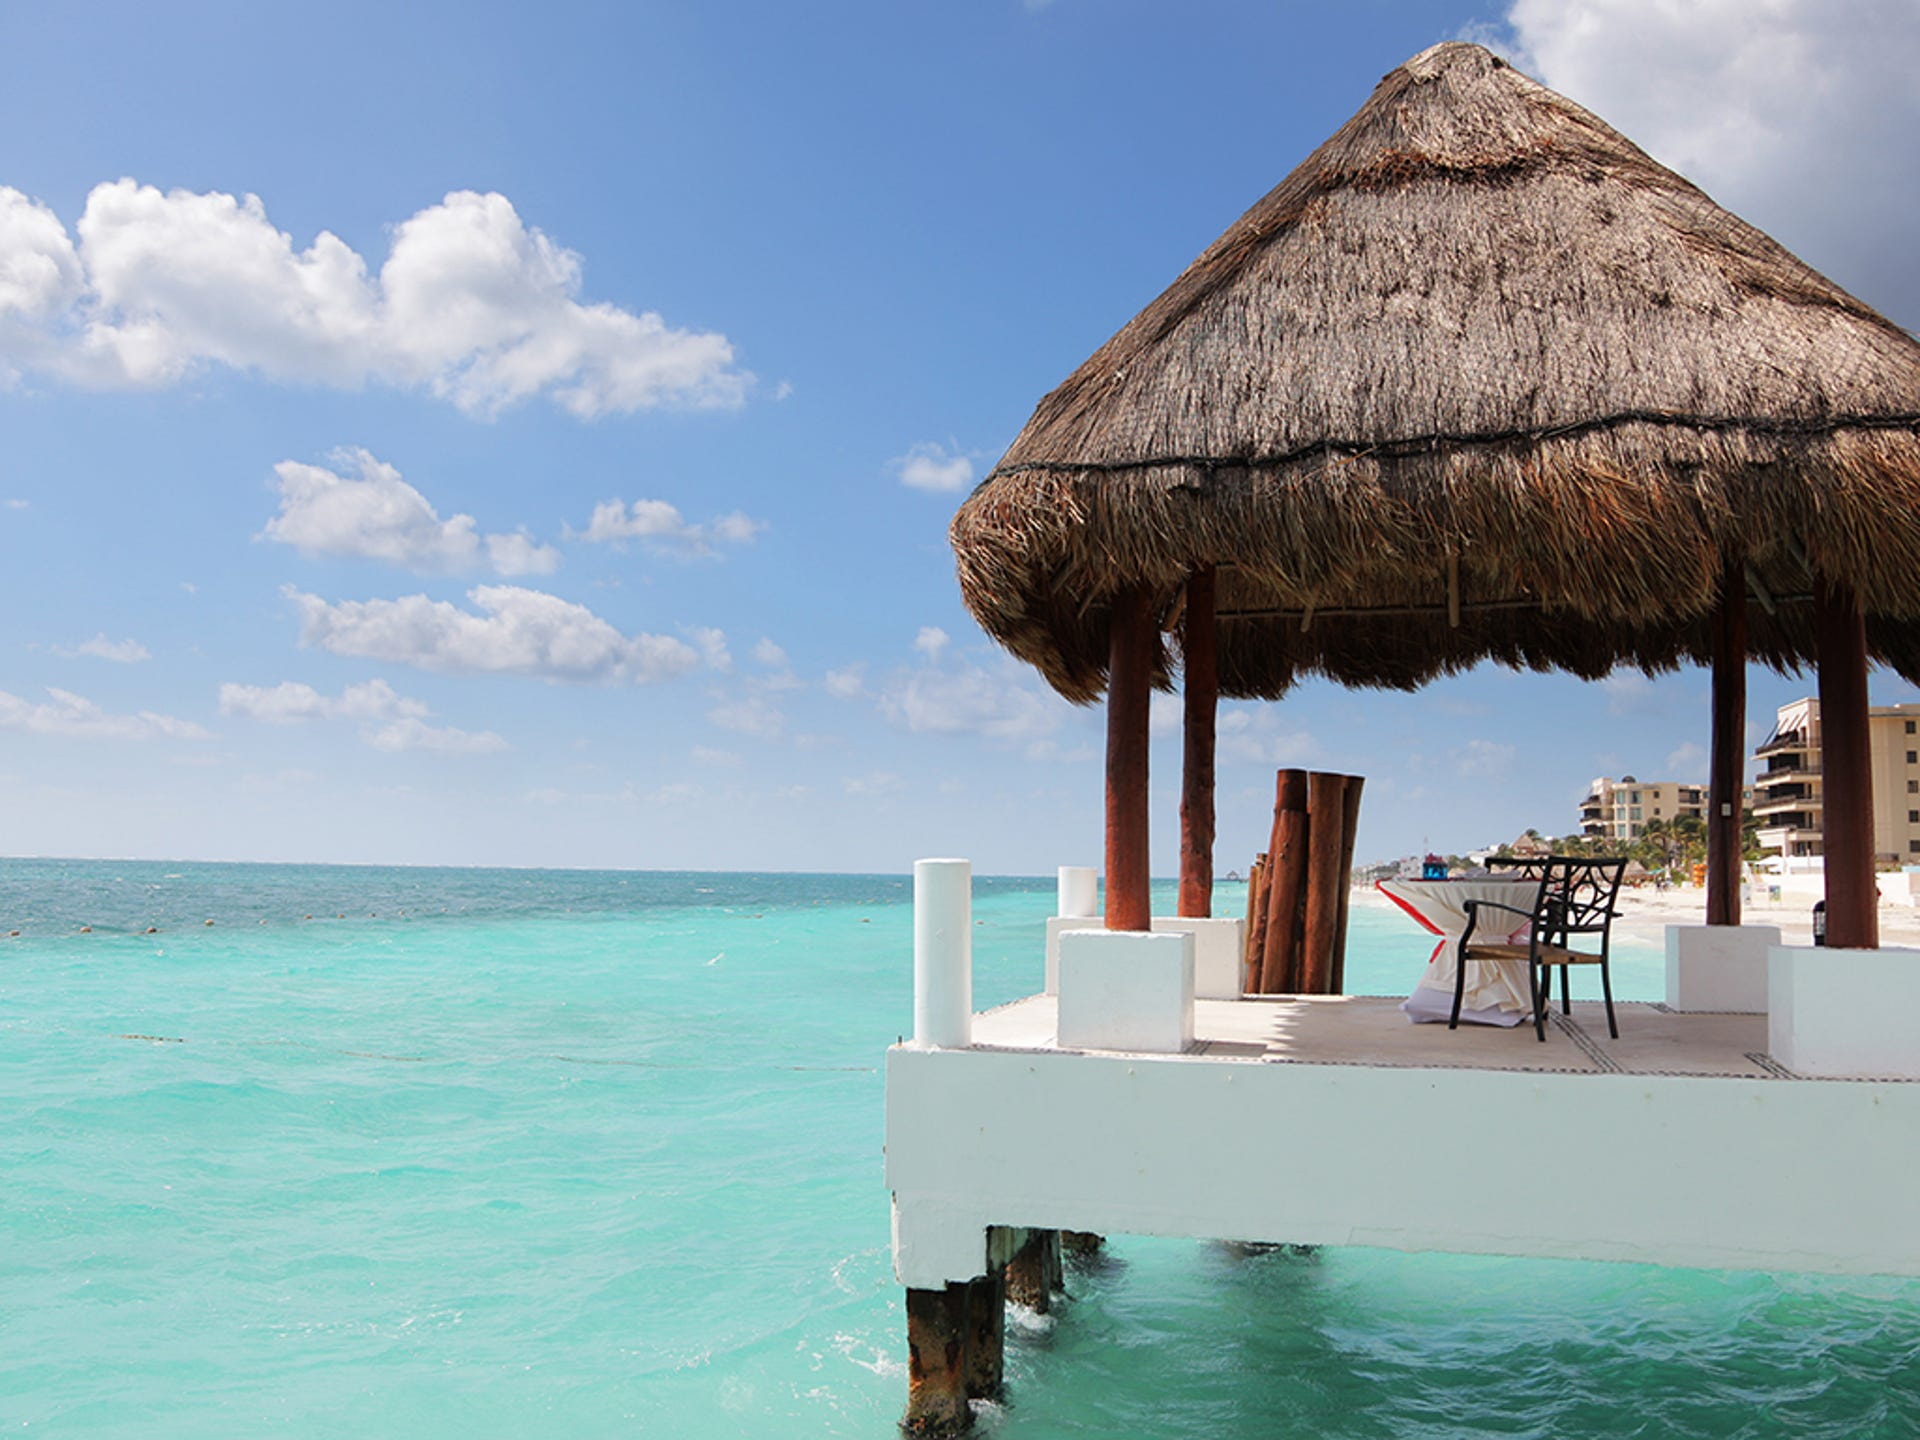 Best hotels in Mexico and the Caribbean for your winter getaway